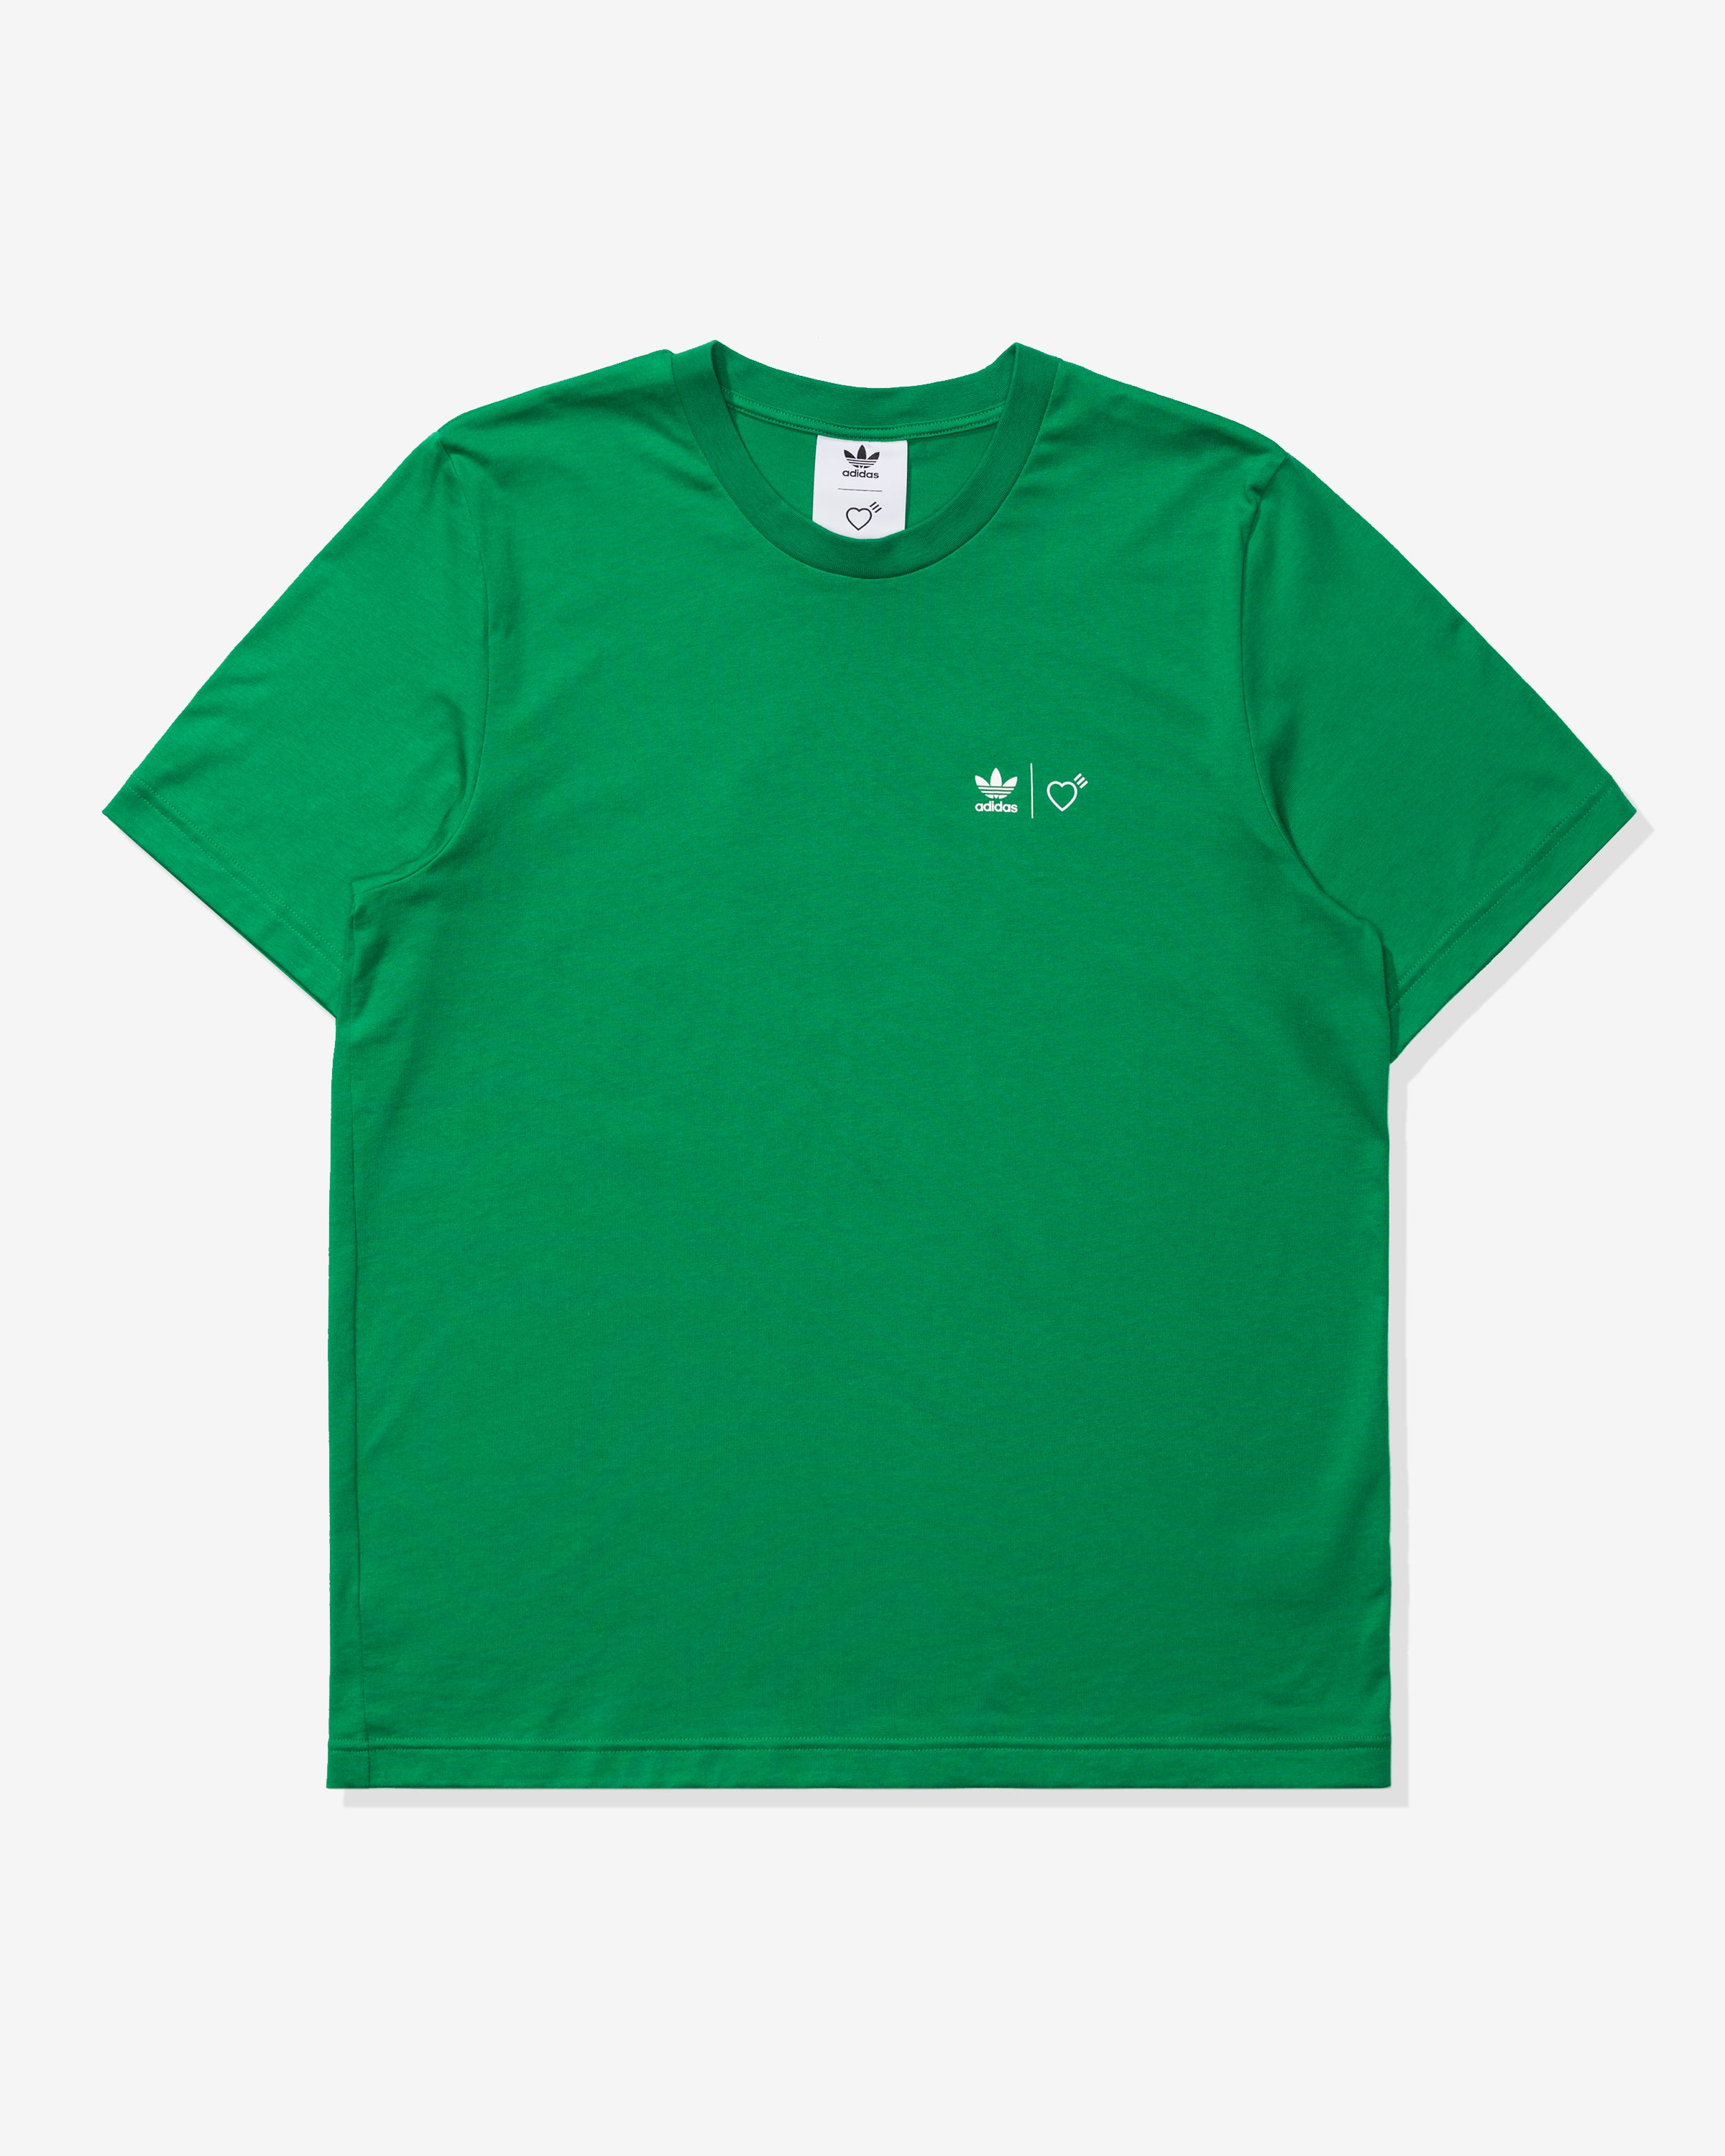 ADIDAS X HUMAN MADE GRAPHIC TEE - GREEN